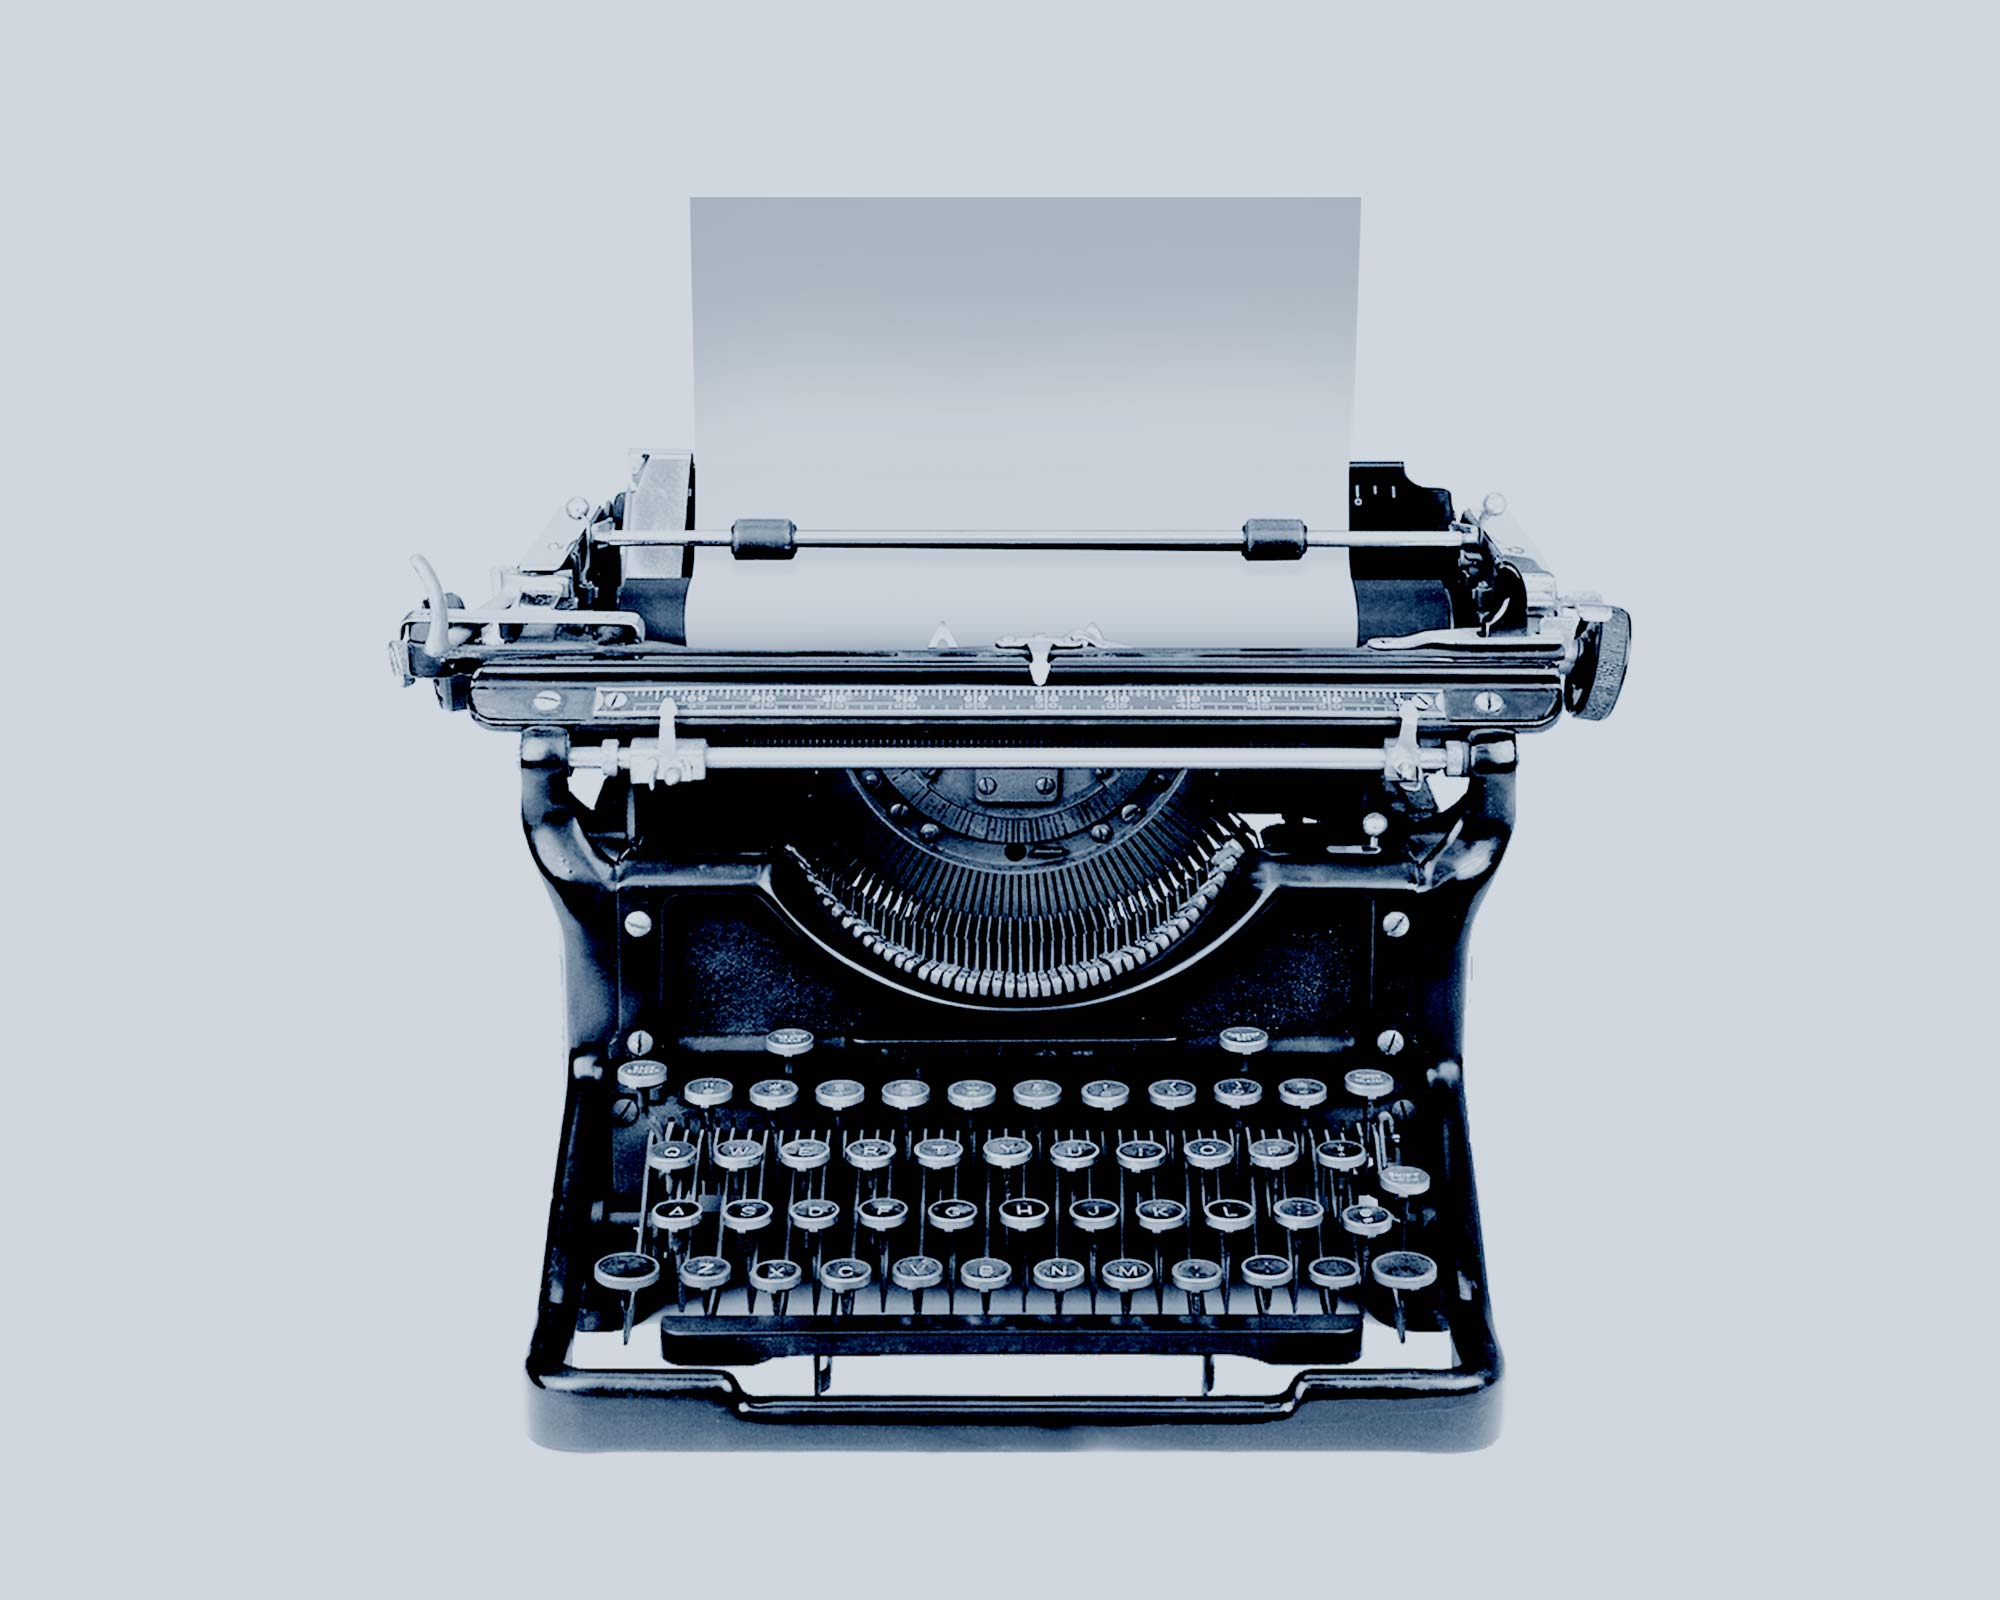 Image of an old fashioned black typewriter, loaded with paper.